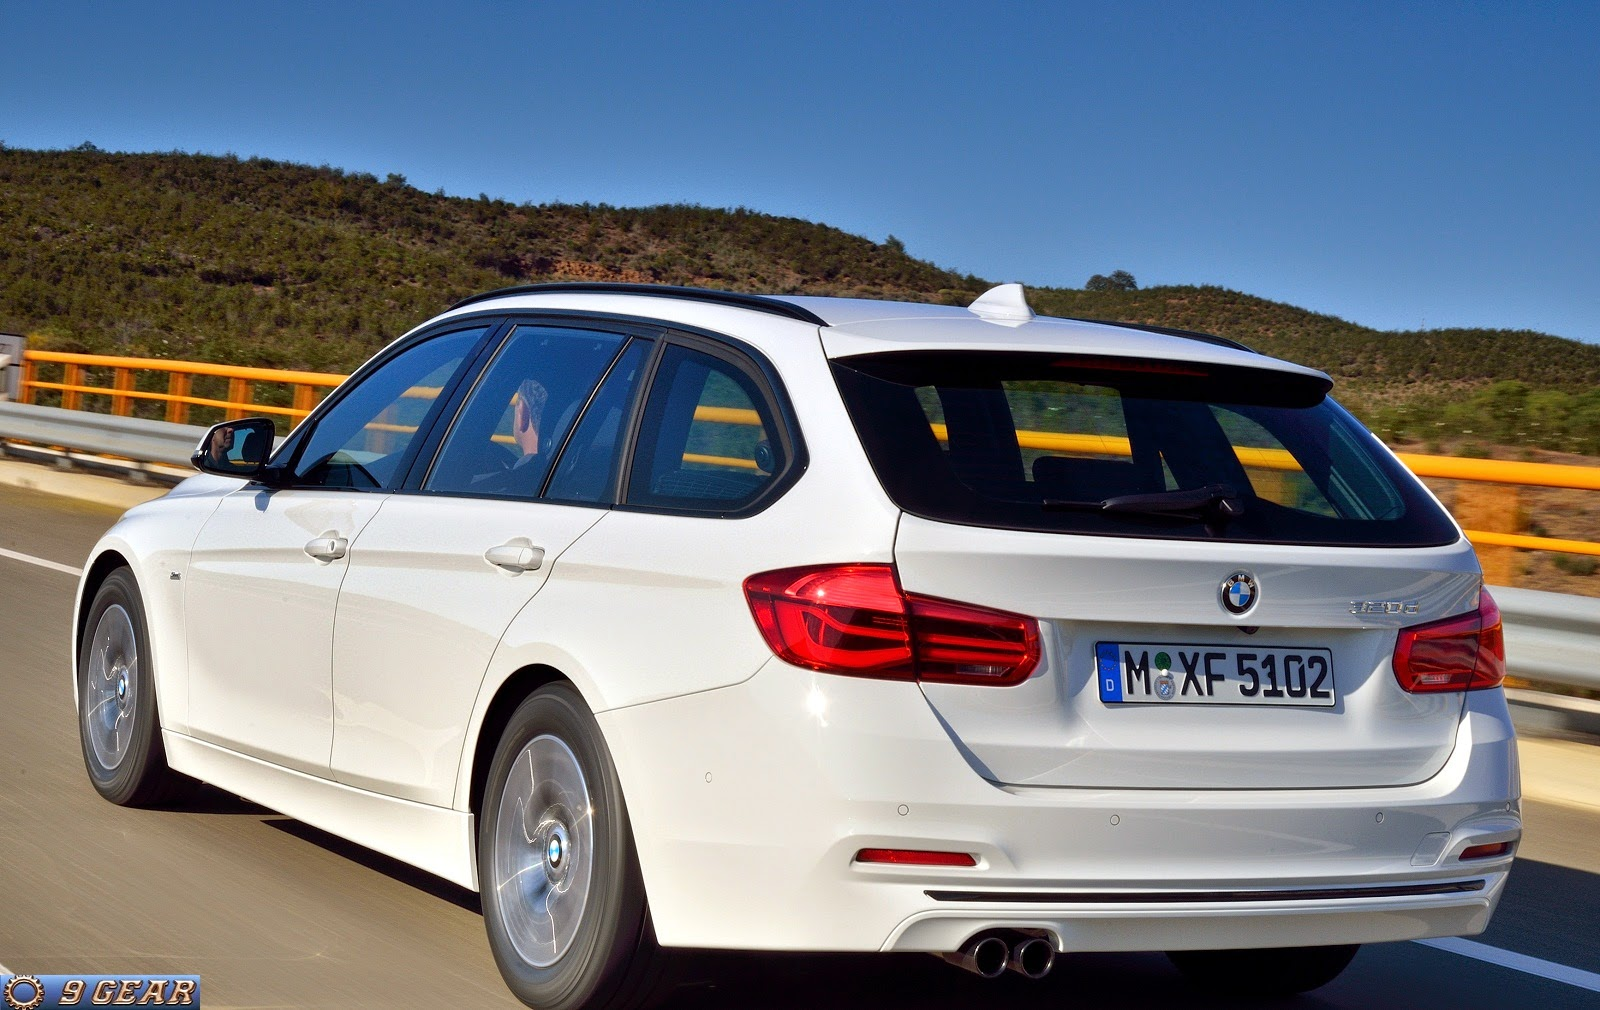 New Bmw 3 Series Sports Wagon Car Reviews New Car